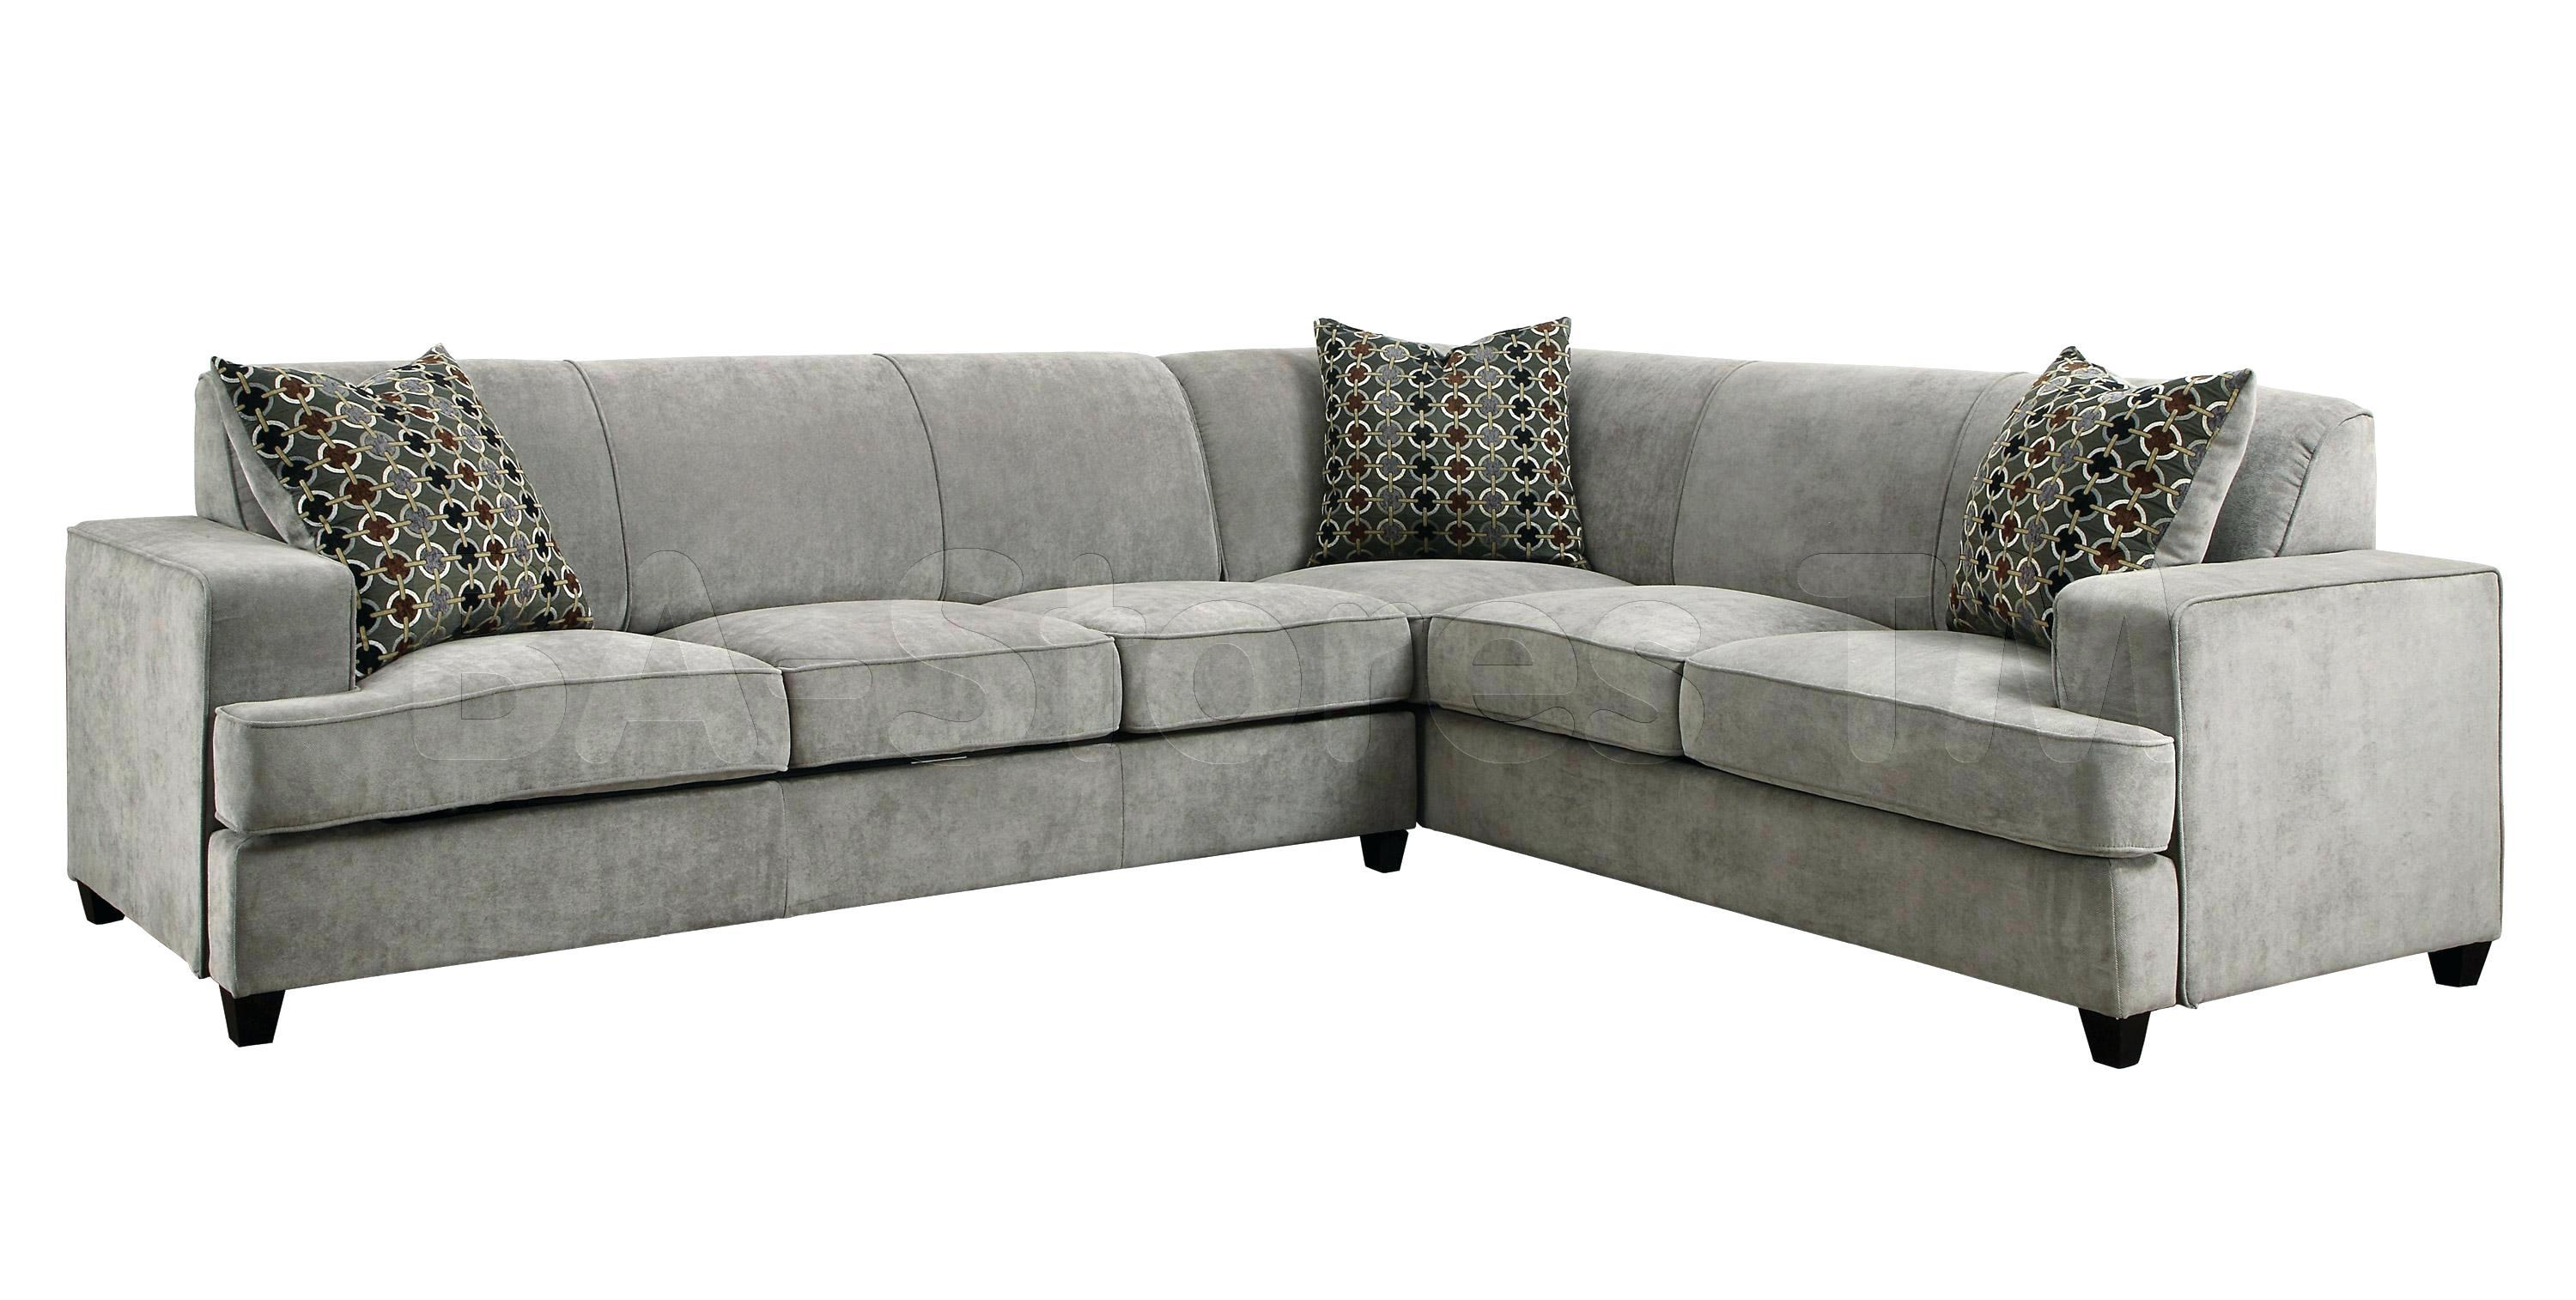 Leather Sectional Sleeper Sofa With Storage Sofas Recliners For Pertaining To Leather Storage Sofas (View 17 of 21)